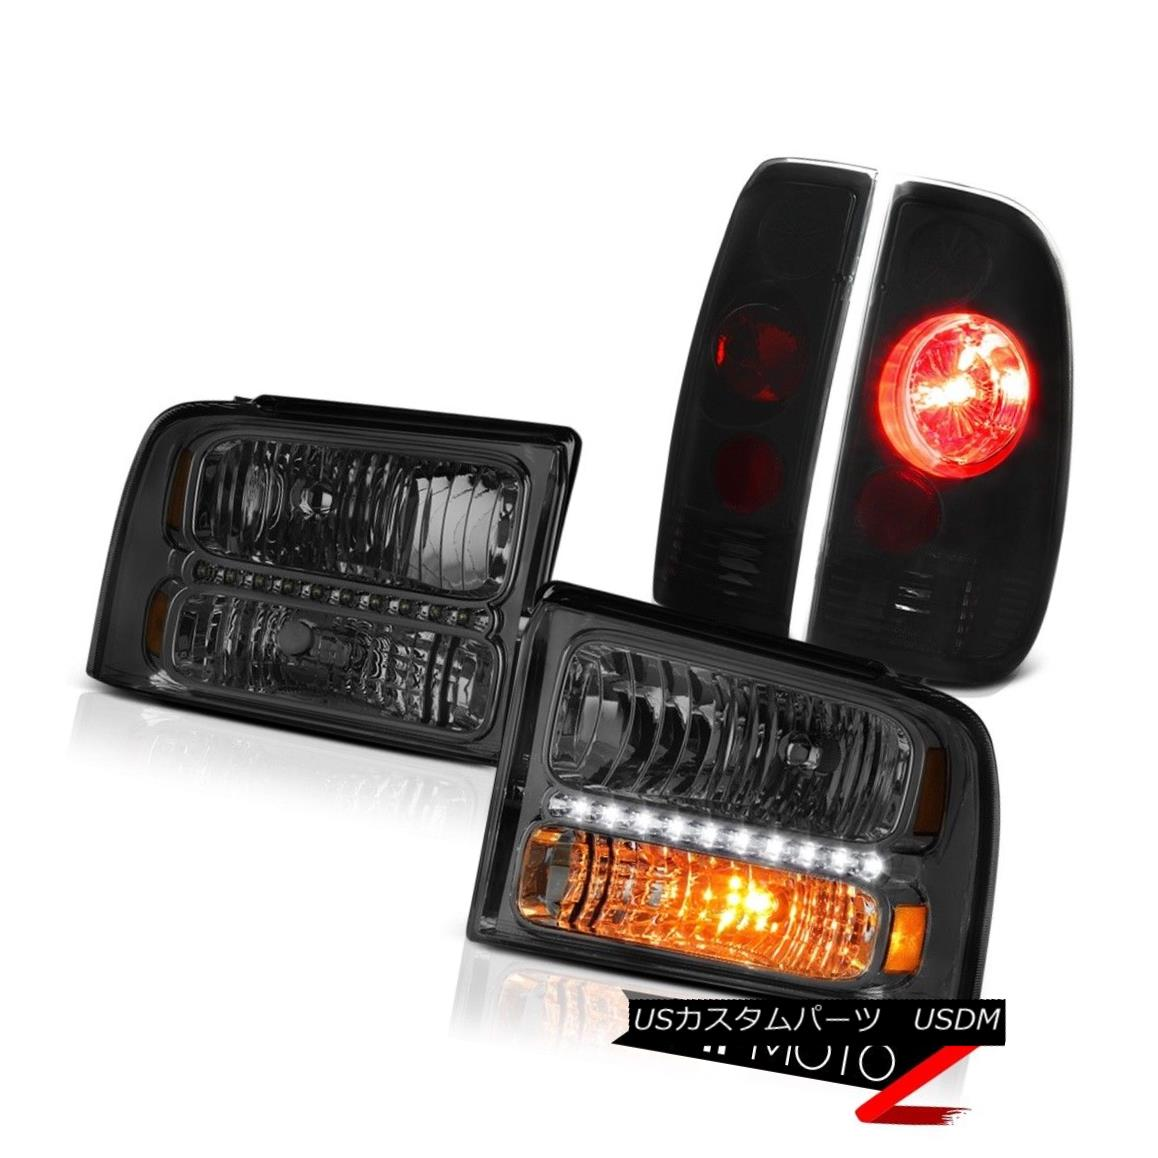 テールライト Left Right Smk Headlights Altezza Darkest Tail Lights 2005 2006 2007 F250 Lariat Left Right SmkヘッドライトAltezza Darkestテールライト2005 2006 2007 F250 Lariat